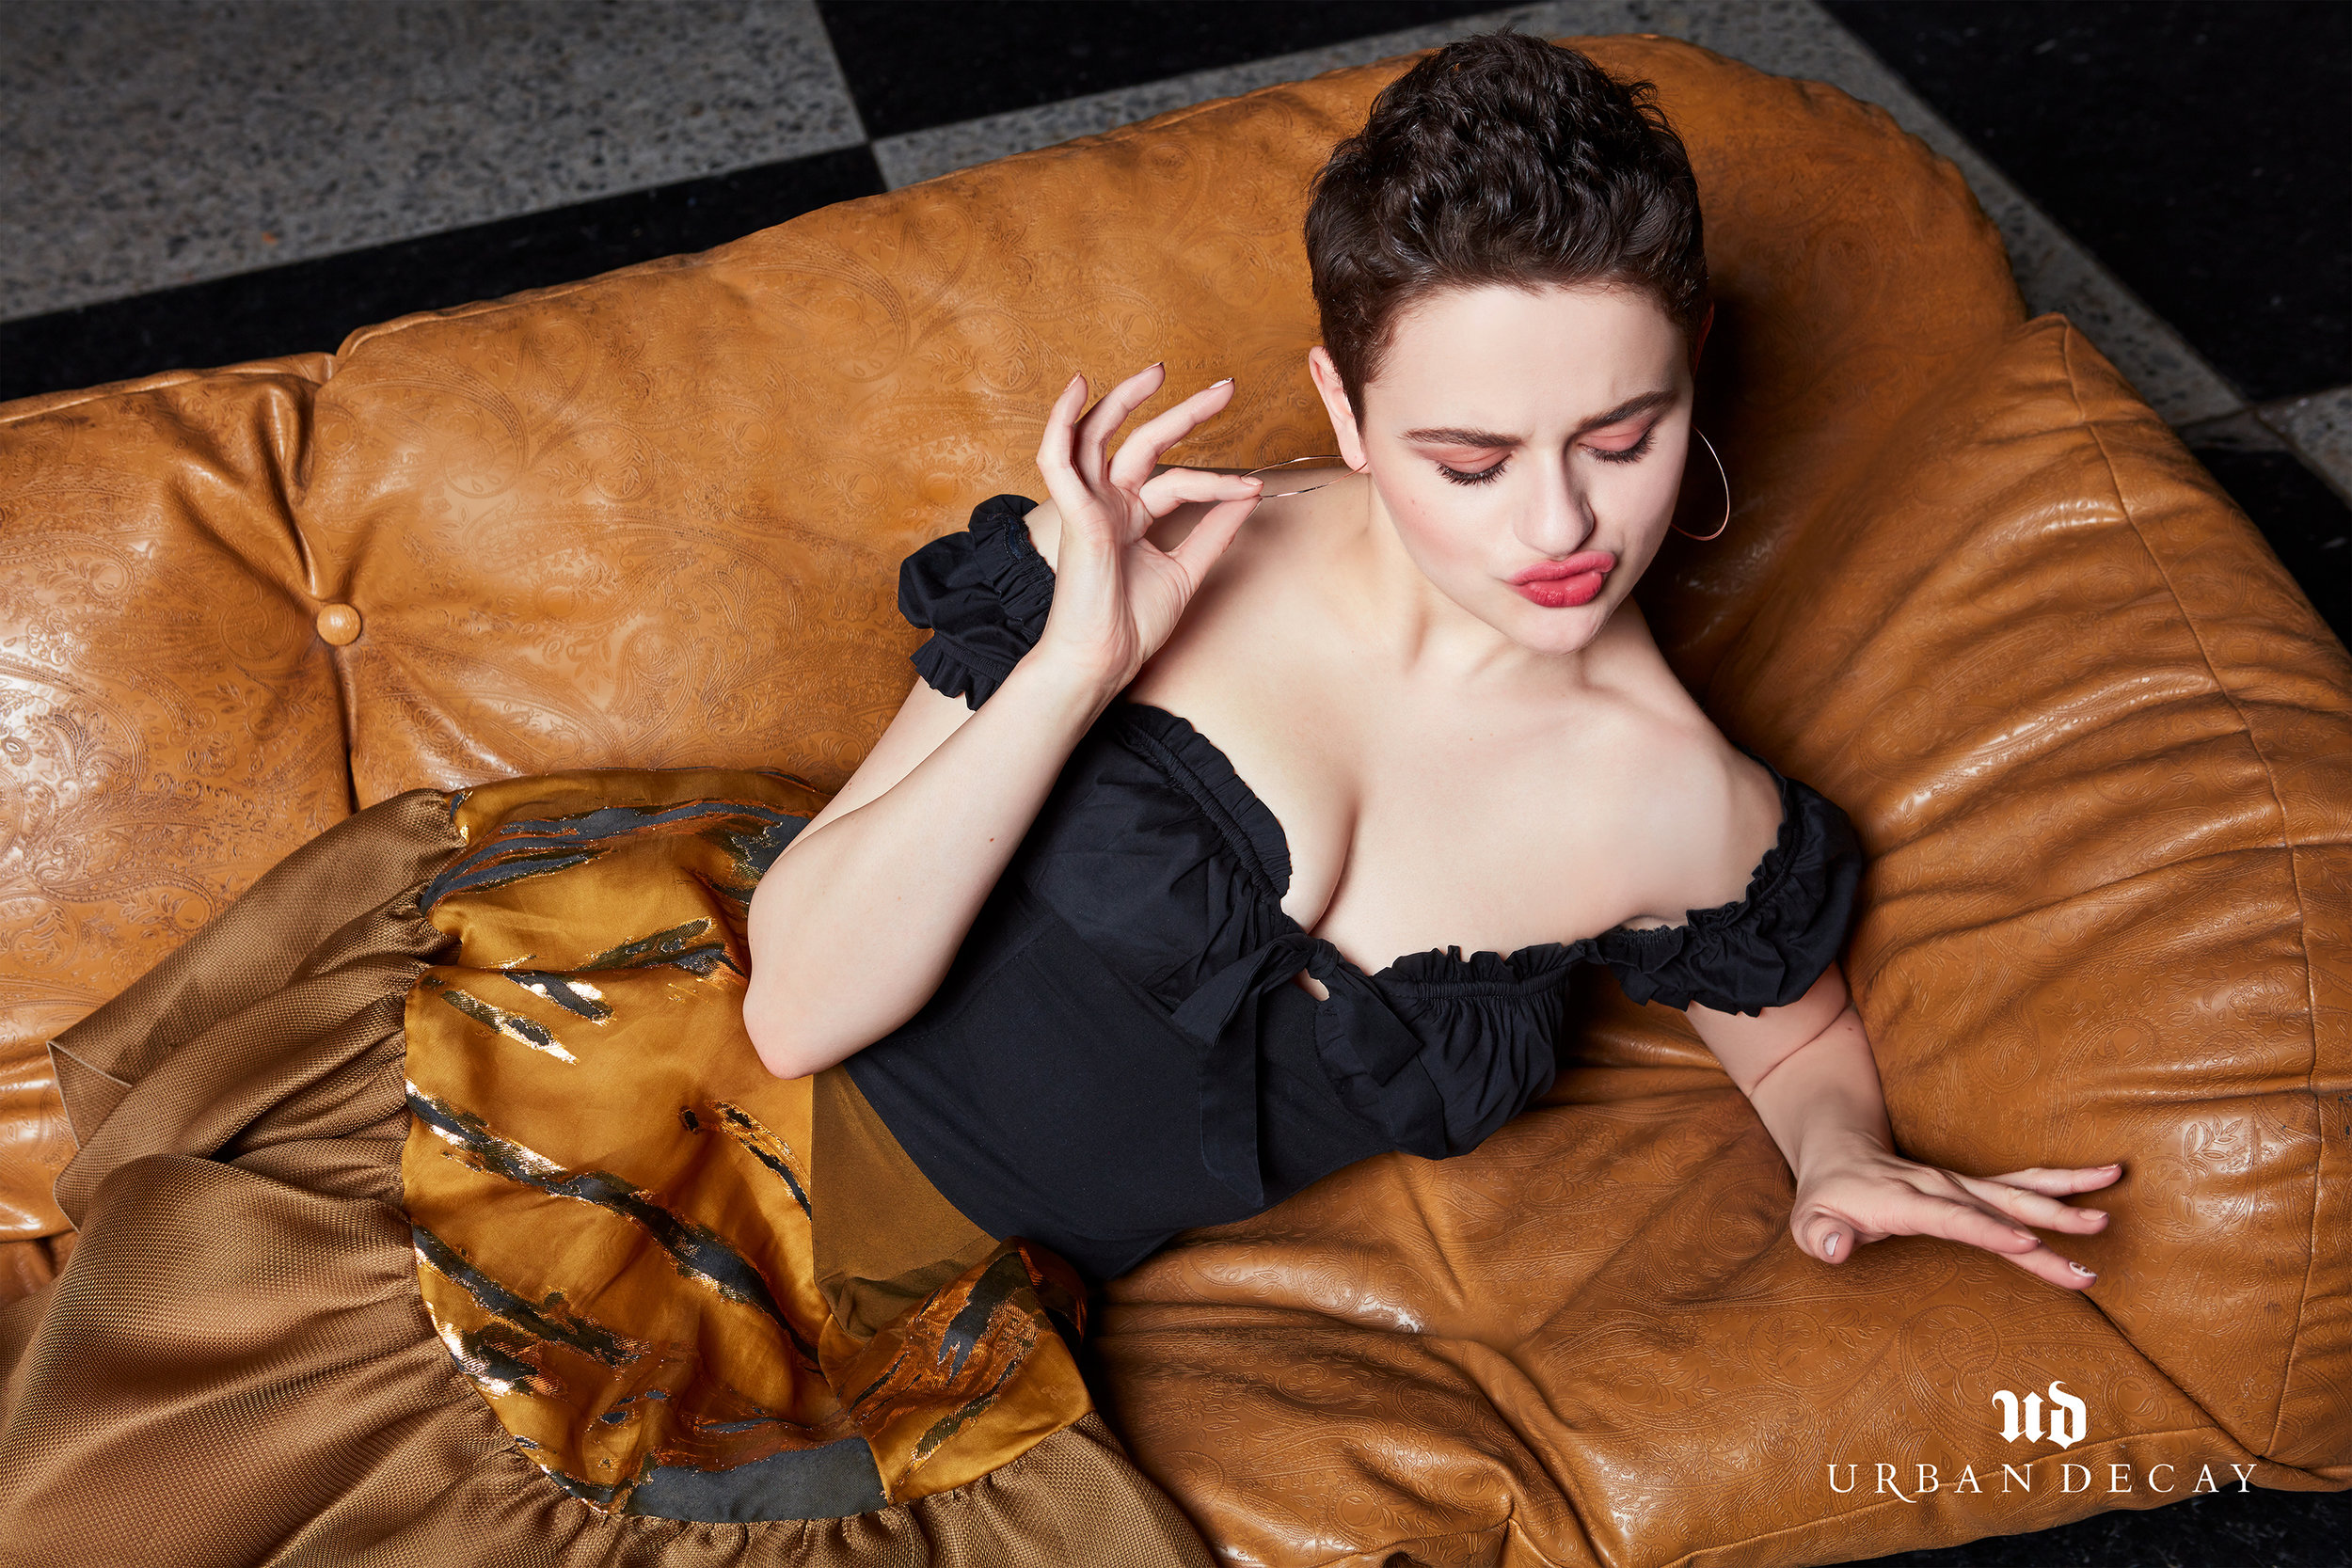 JoeyKing_StayNaked_LifesSyle_238-V2-Less-Shoulder-V2-web.jpg